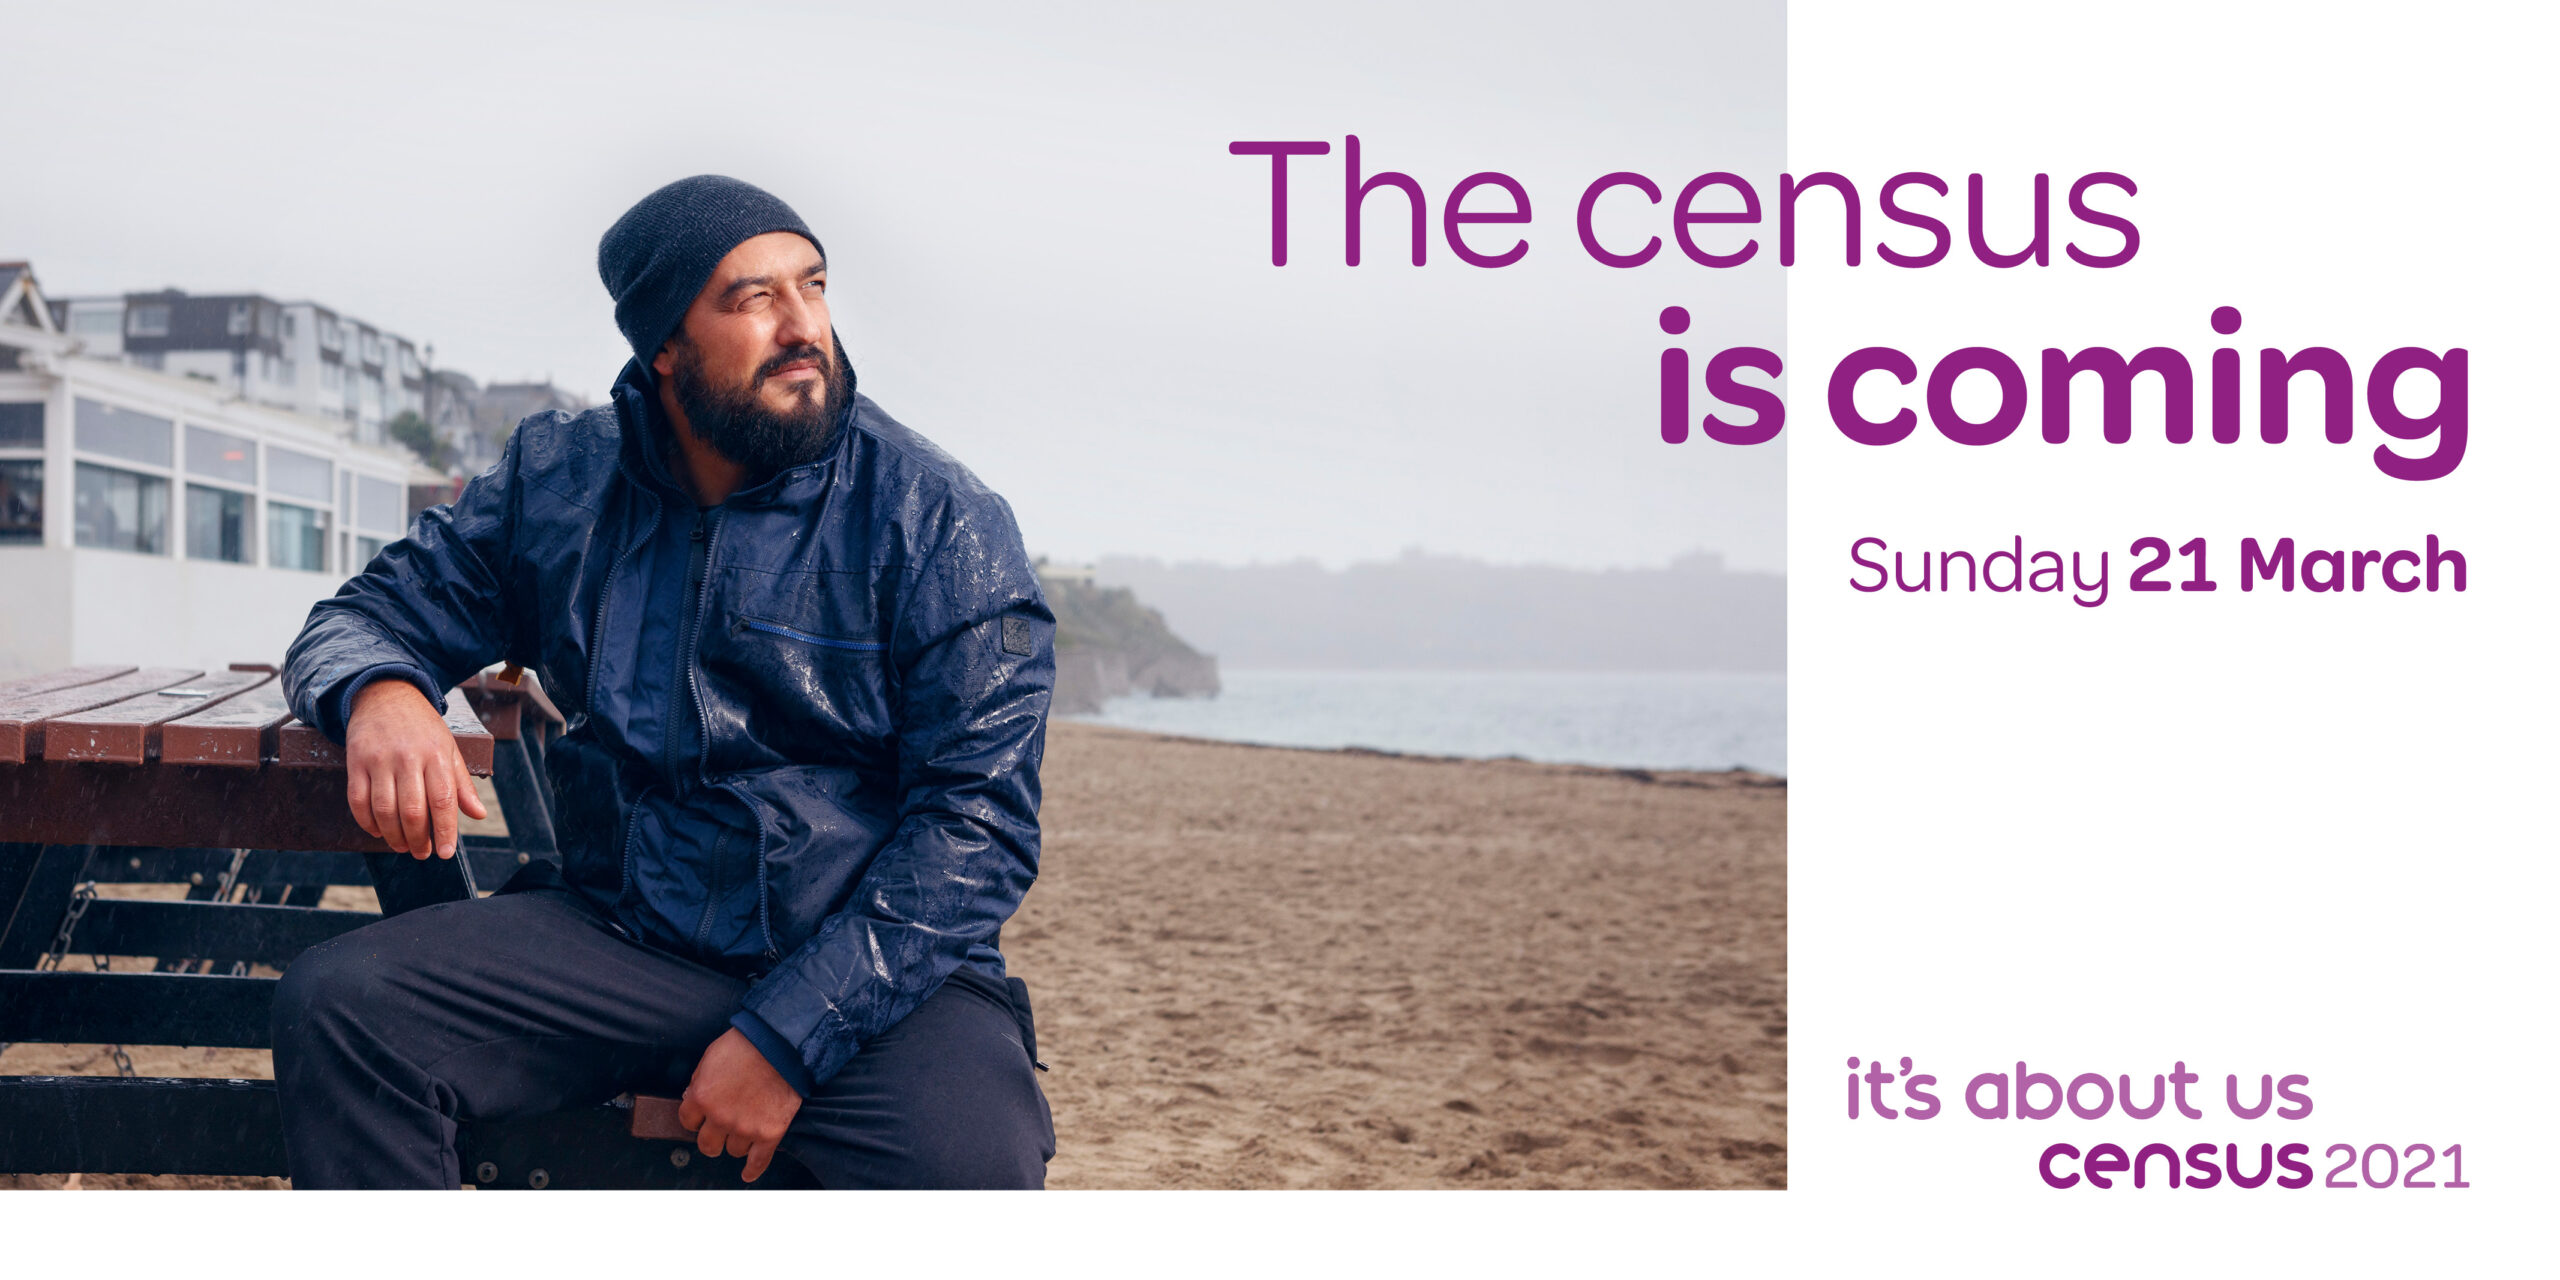 The census is coming, Sunday 21 March, it's about us census 2021